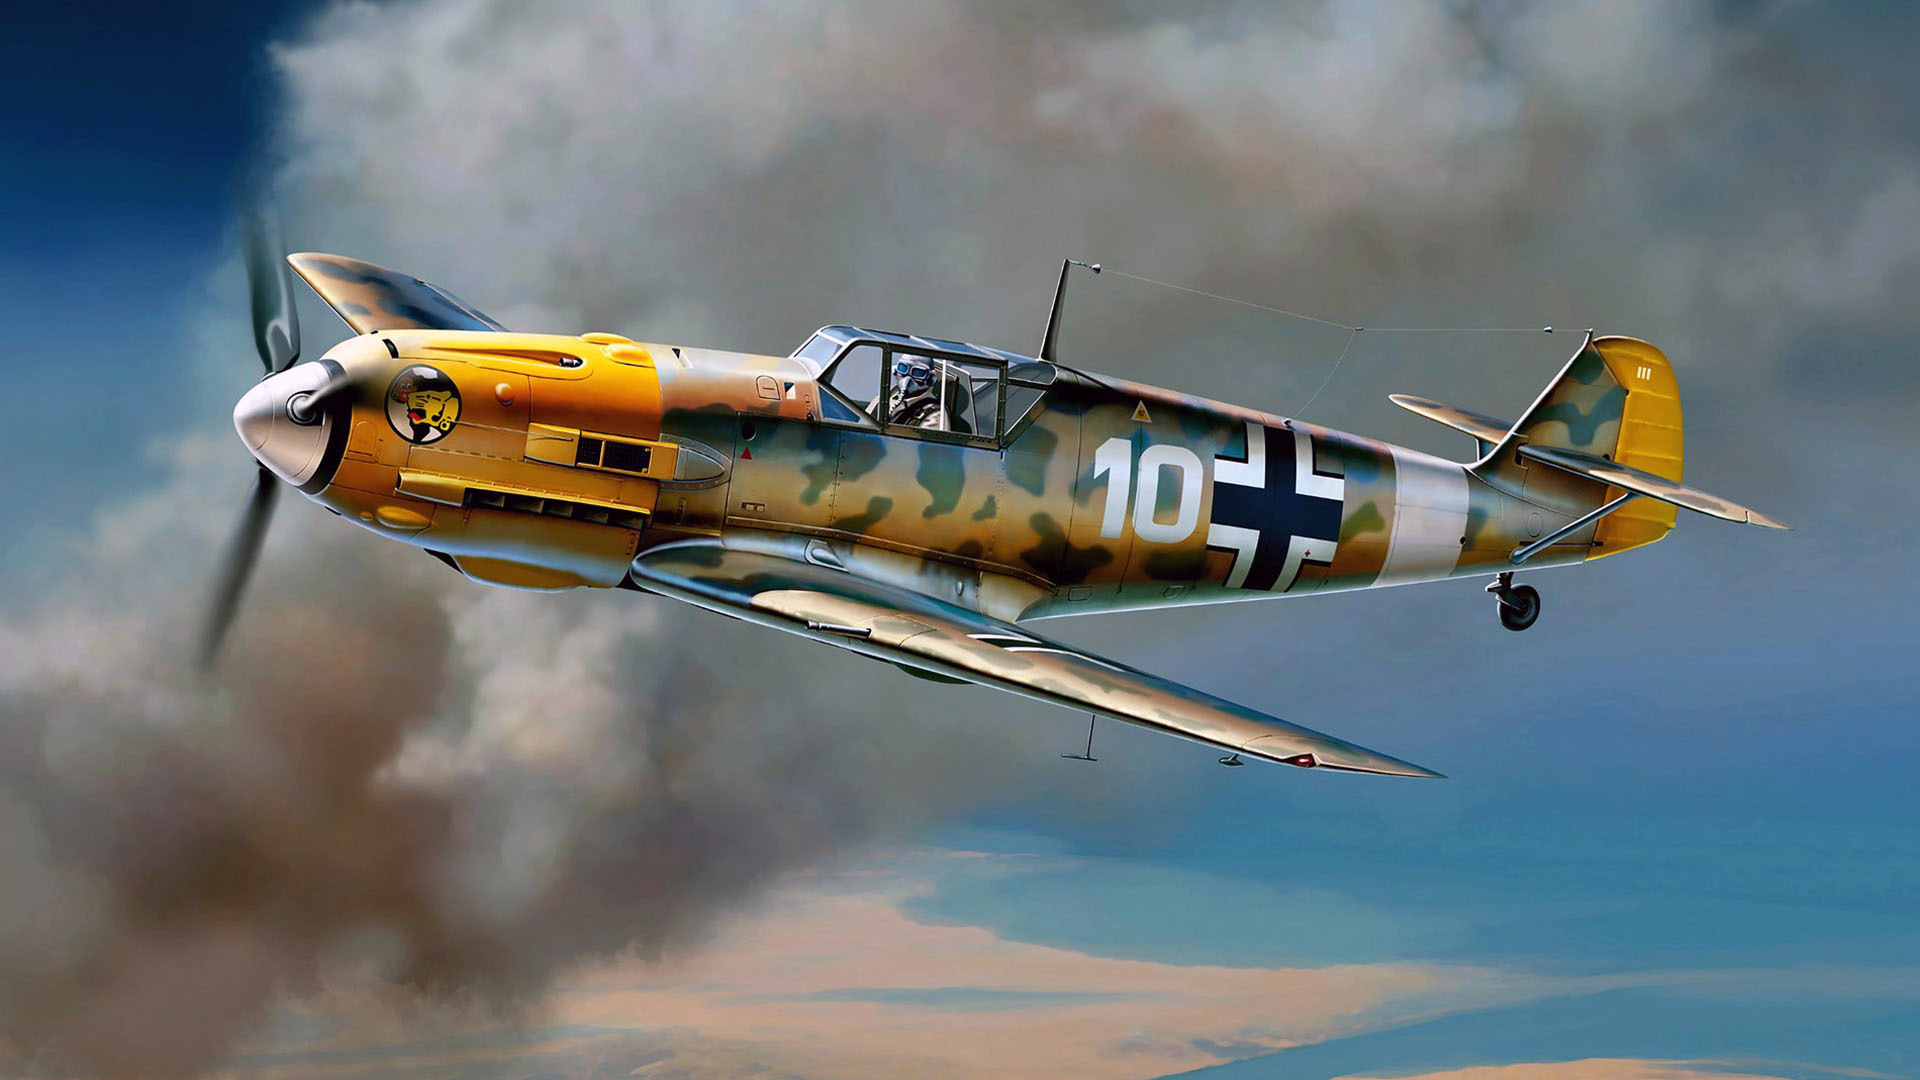 1000+ images about Planes - Messerschmitt Bf-109 on Pinterest